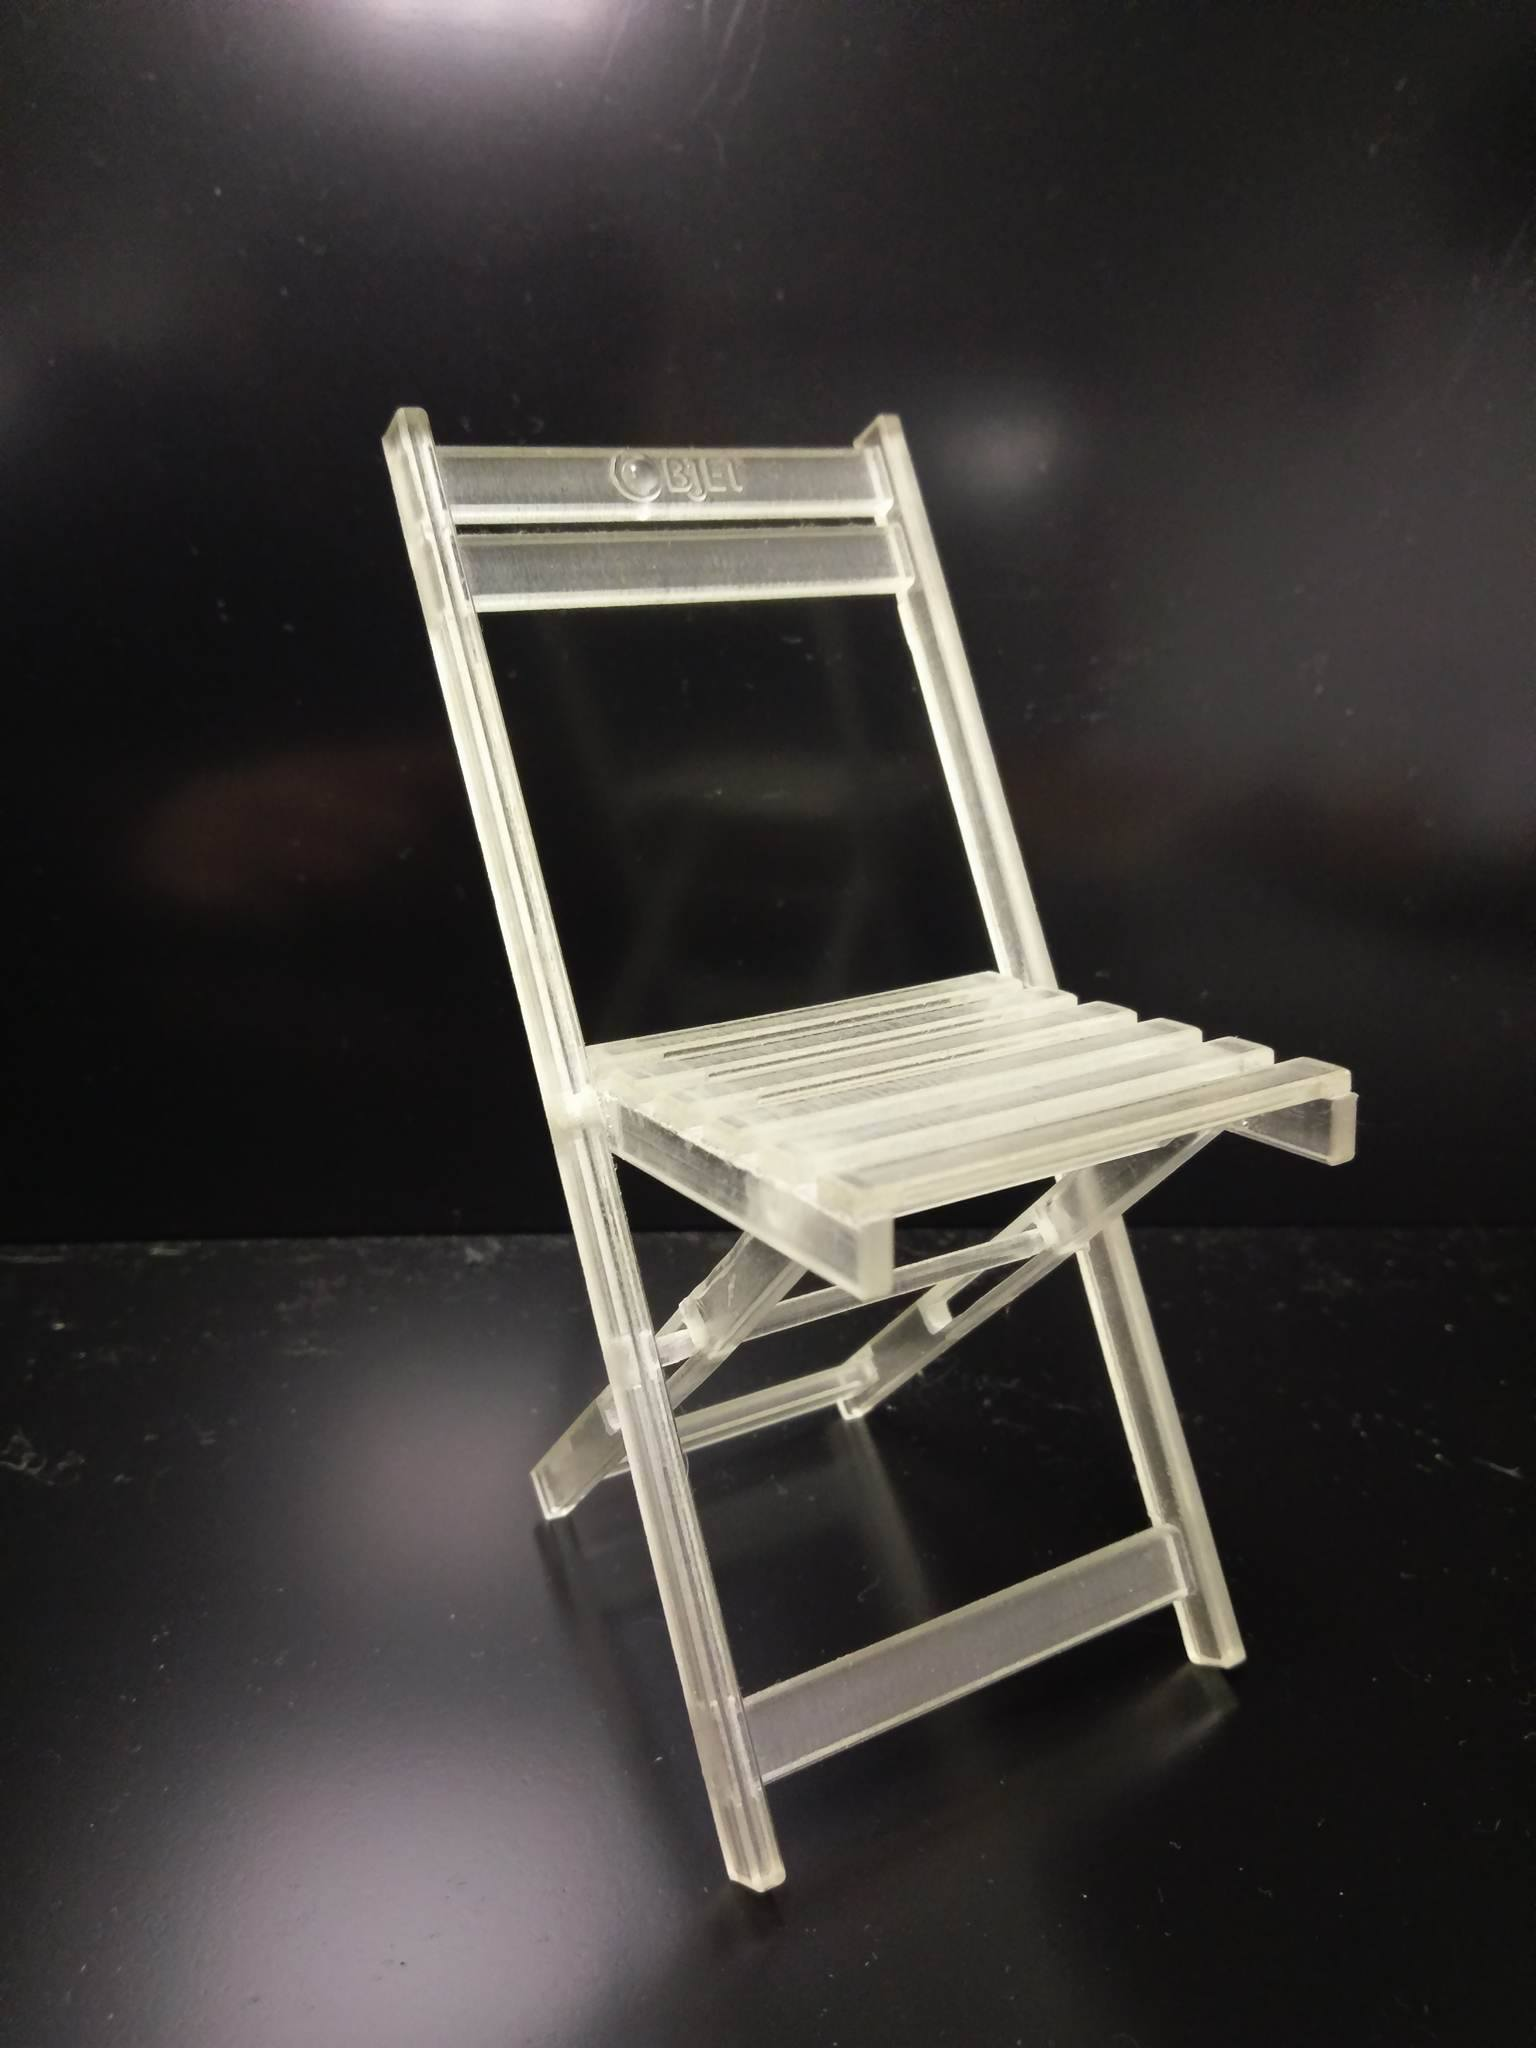 FDM 3D printed chair model made with transparent VeroClear.